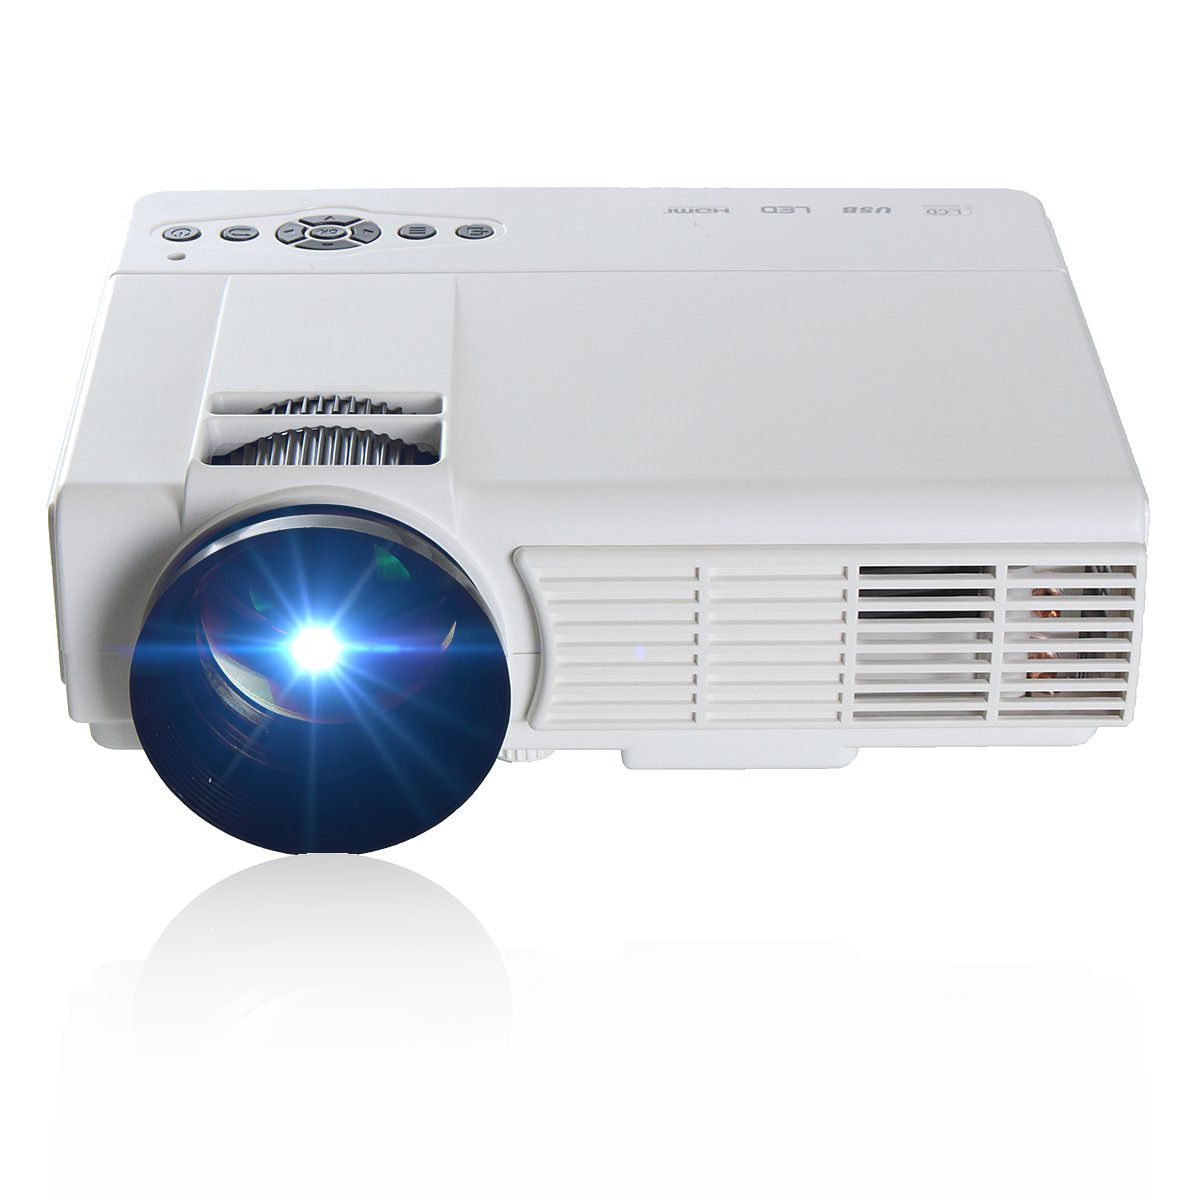 LEORY Q5 3D HD 1080P 3000 Lumens 800 x 480 Resolution Home Theater Multimedia LED Projector for Home cinema Black/WhiteLEORY Q5 3D HD 1080P 3000 Lumens 800 x 480 Resolution Home Theater Multimedia LED Projector for Home cinema Black/White